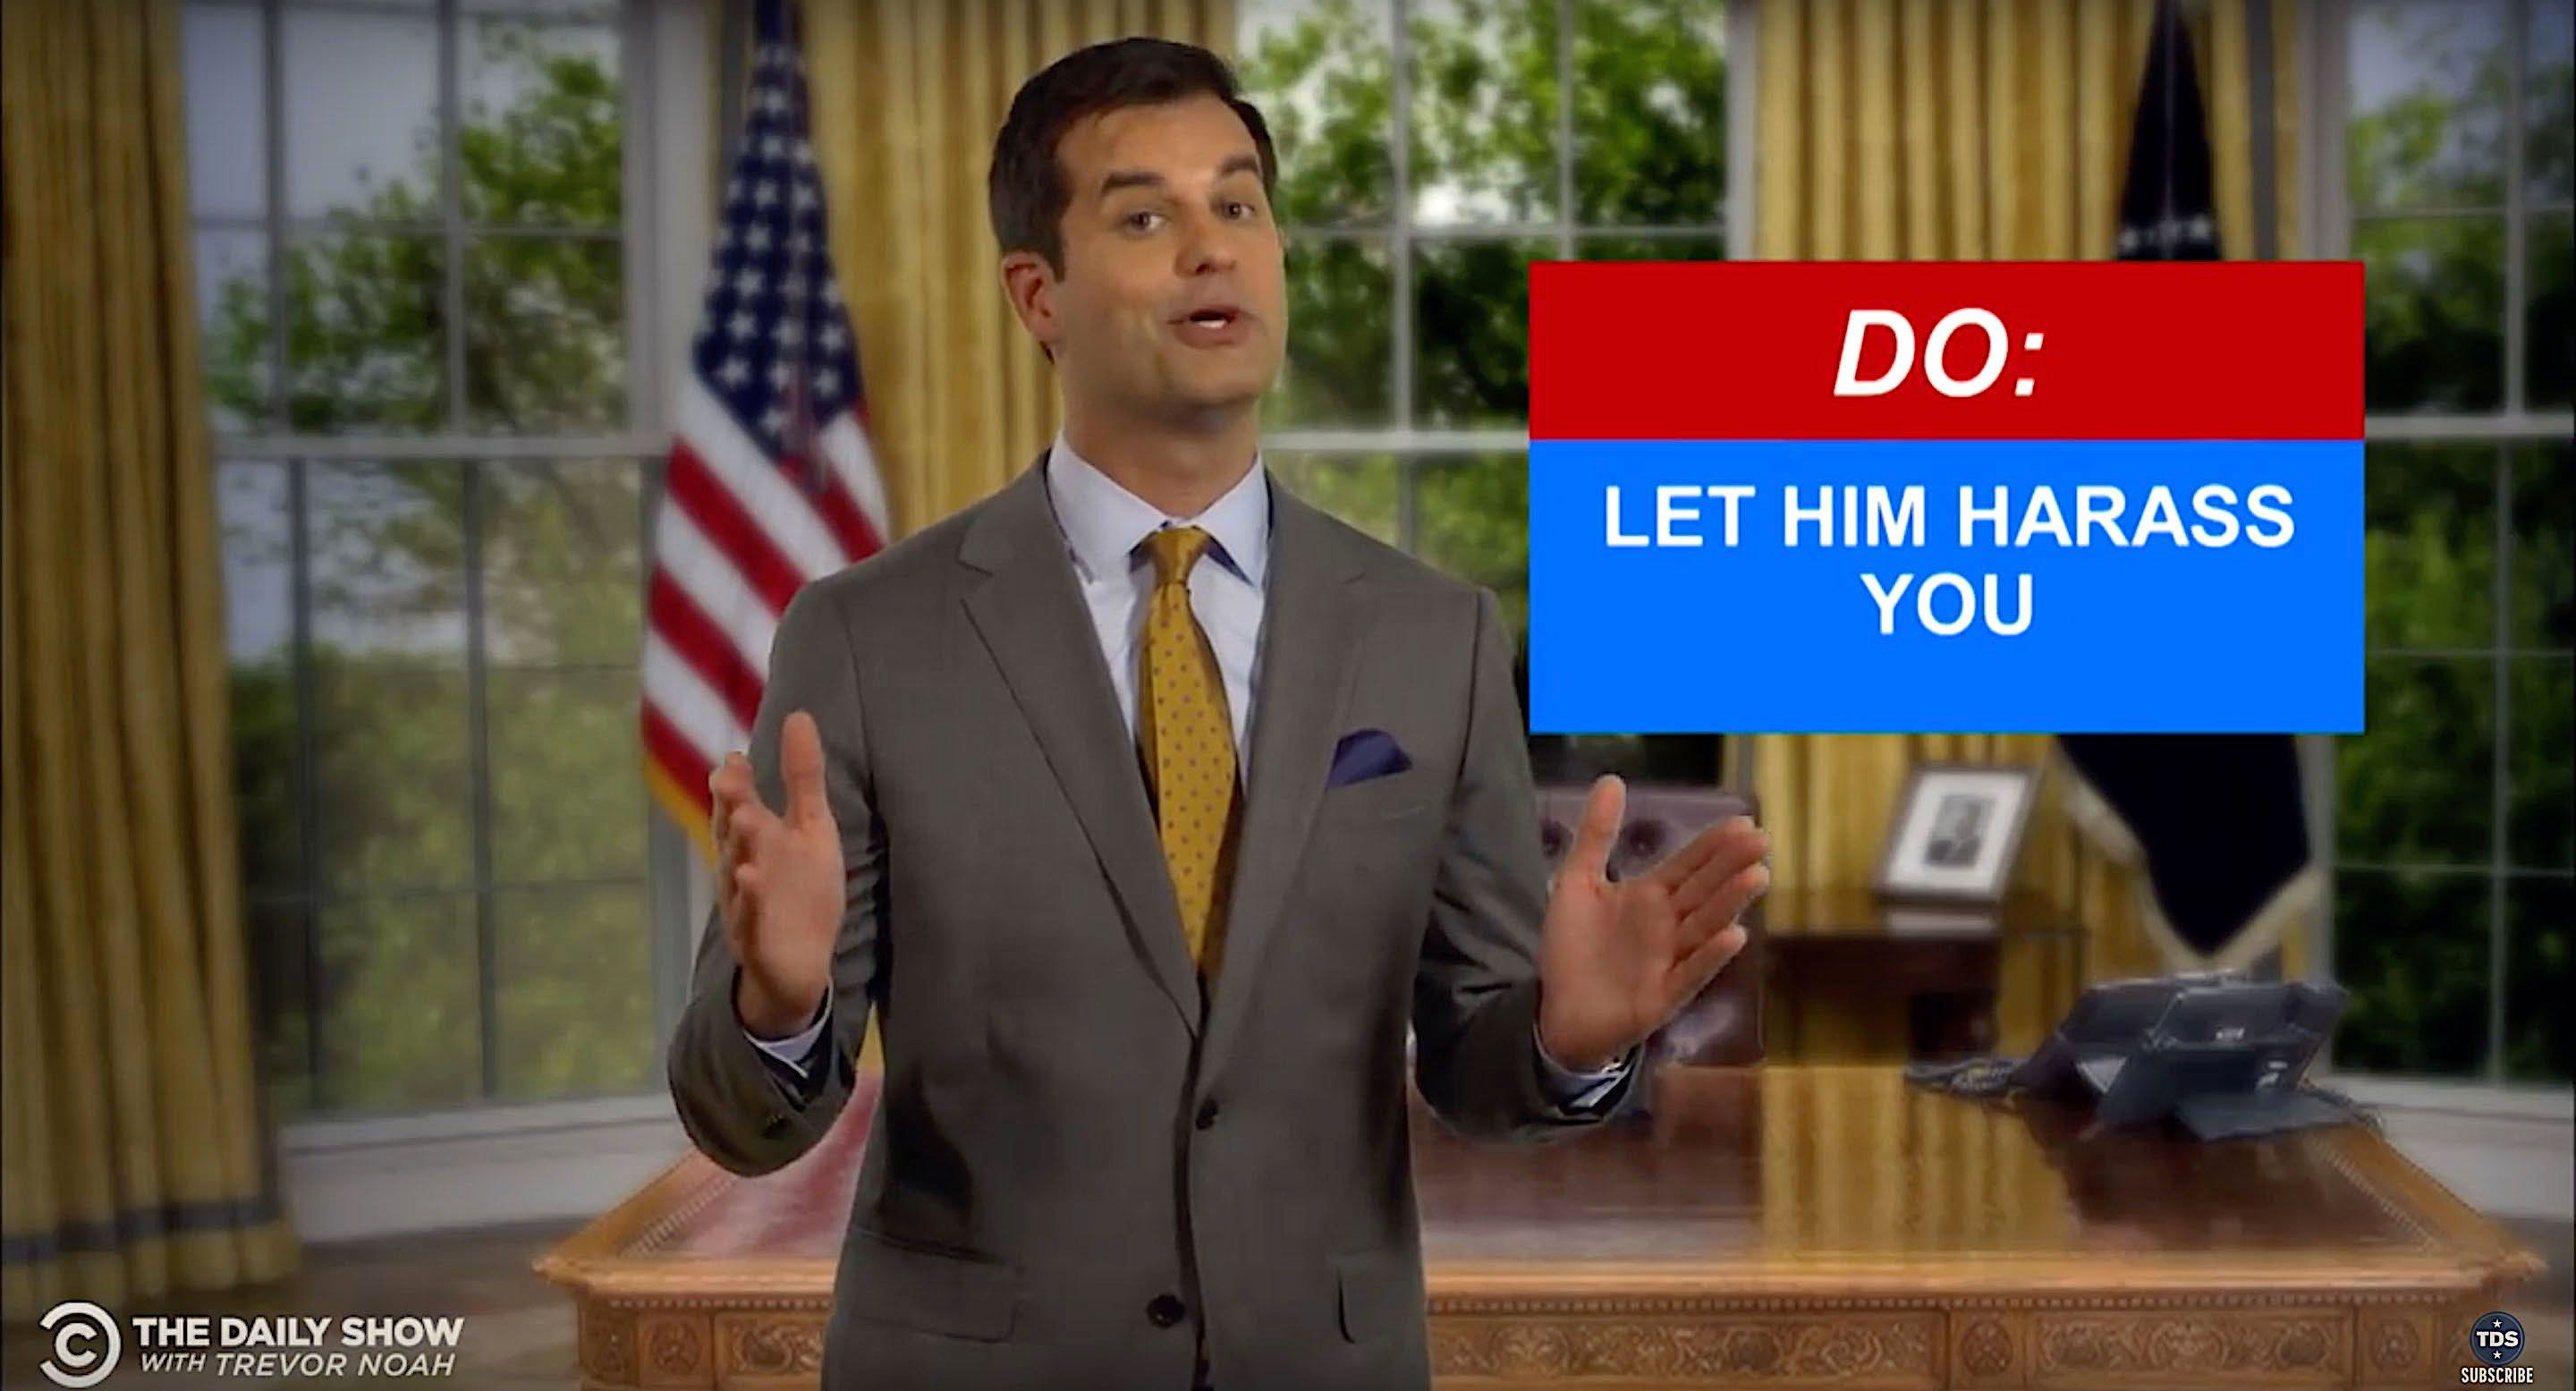 """The Daily Show"" offers some advice on how to avoid harassing the president."